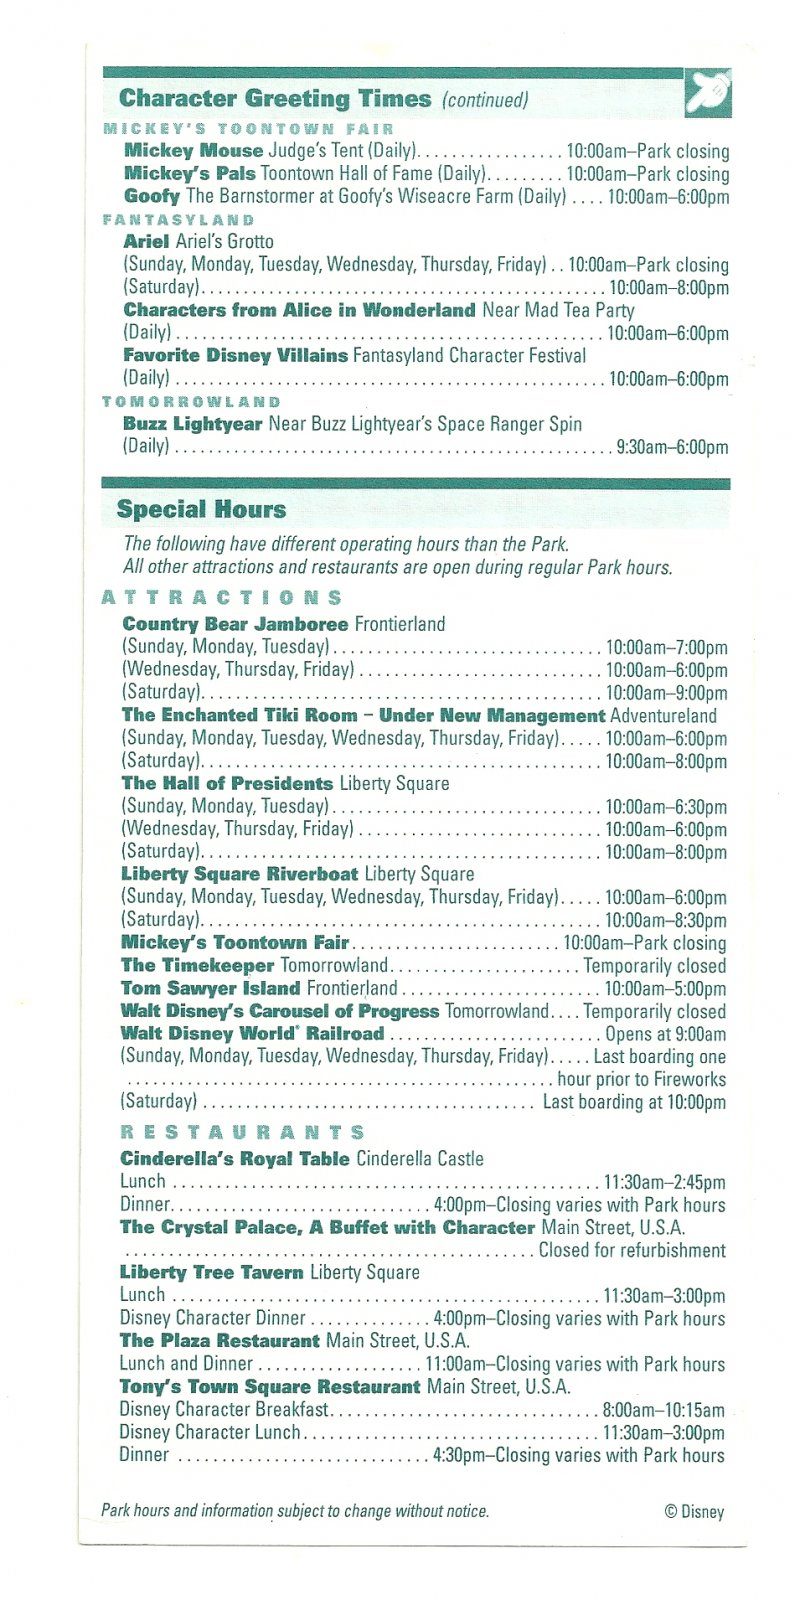 Image 1 of 2002 walt disney world Magic Kingdom Times guide Flyer Nov 10-16